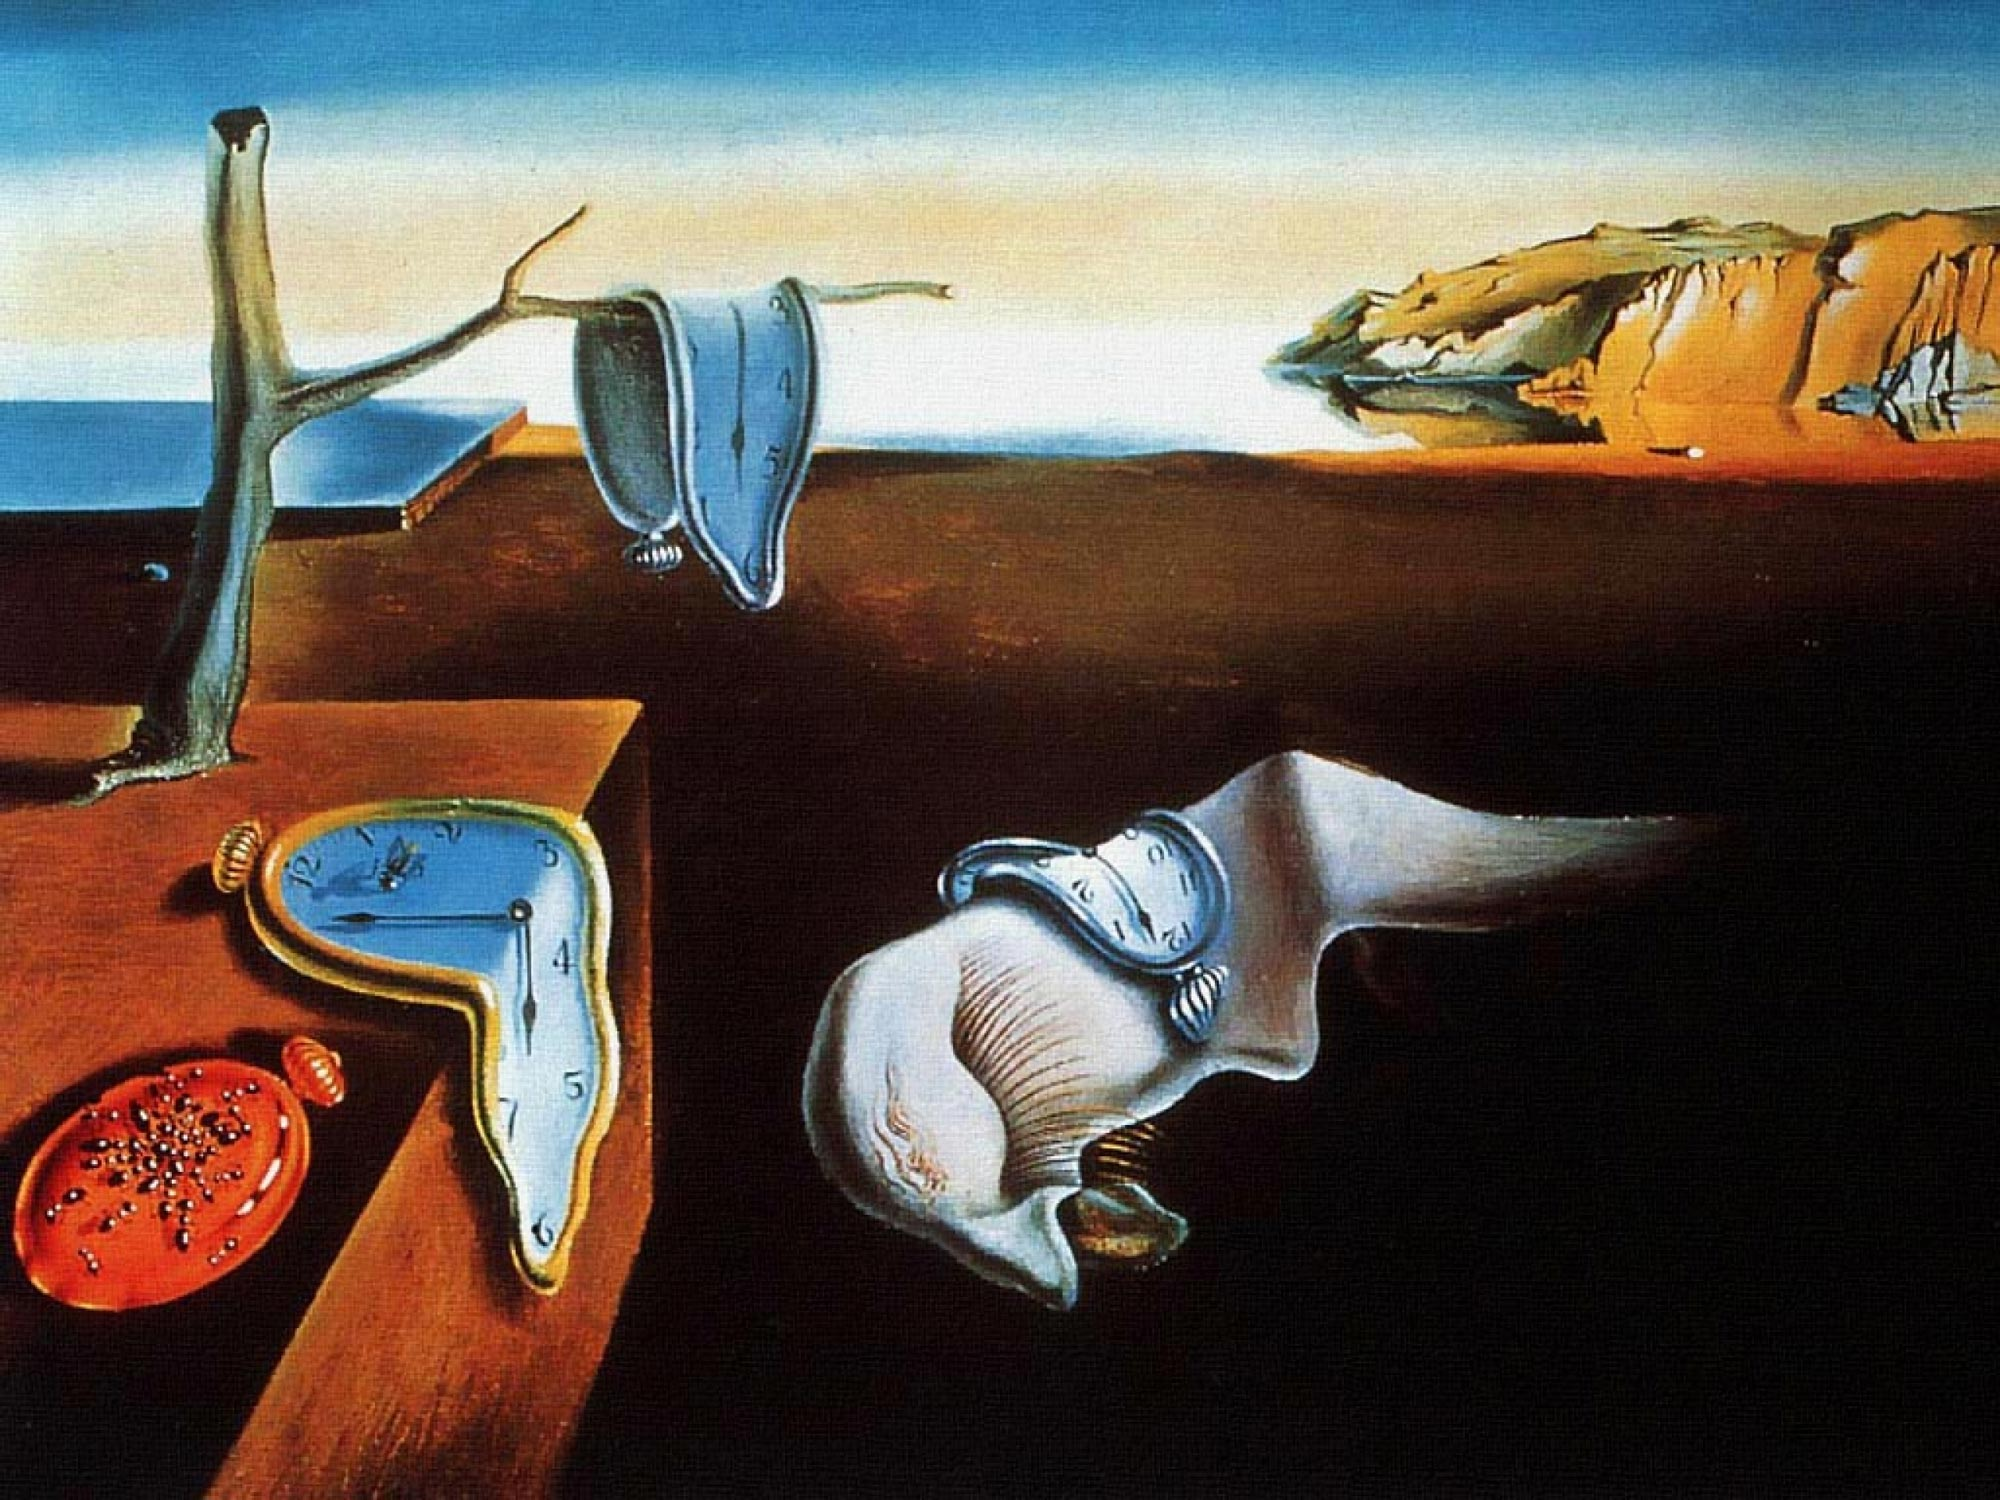 how could a written essay function as a surrealist painting